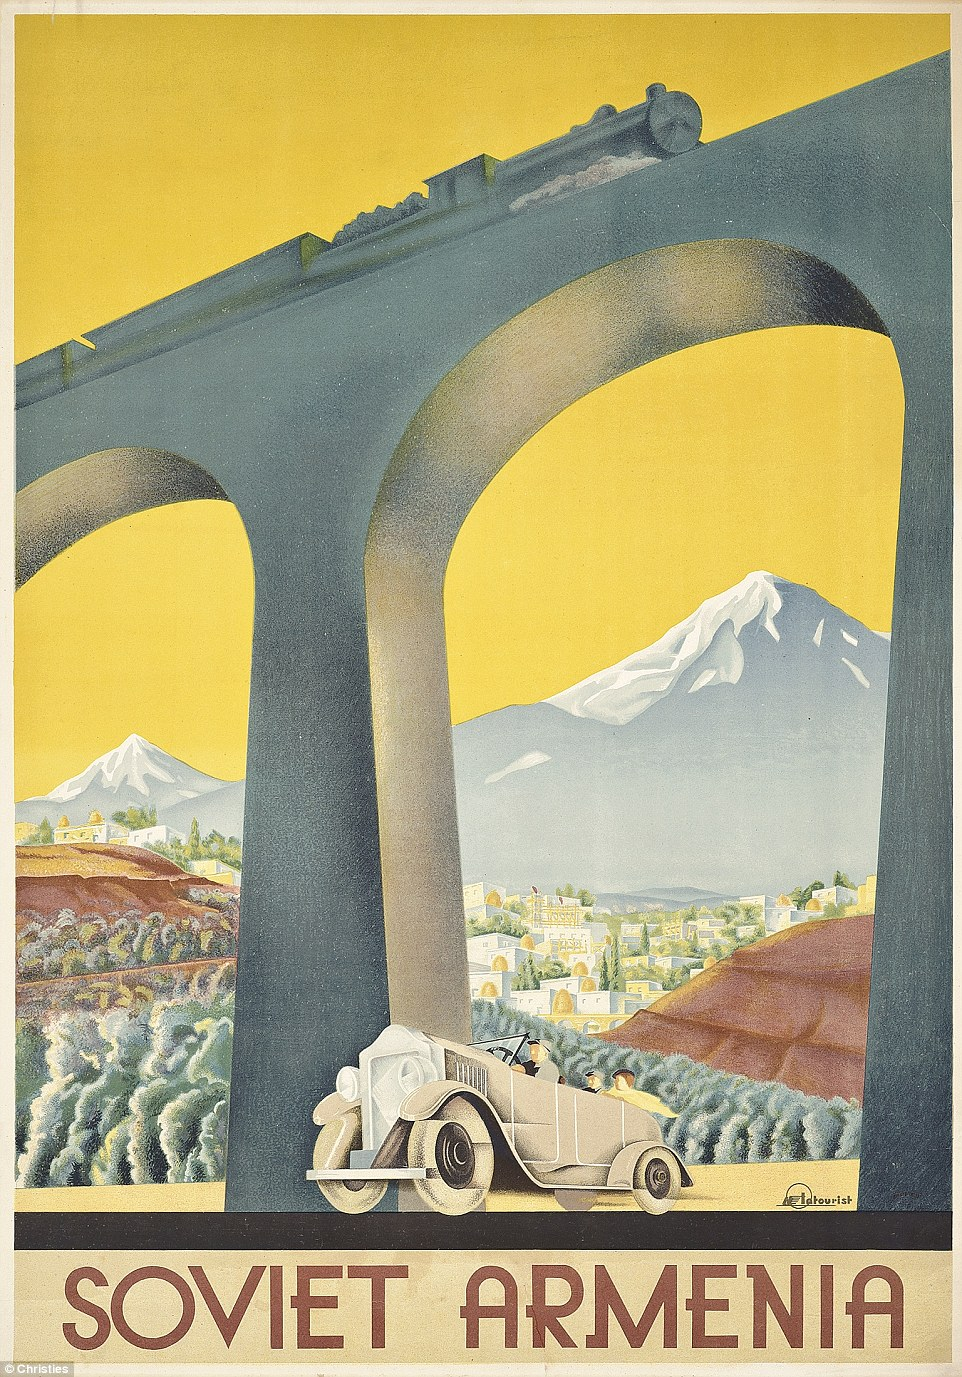 "Classic Soviet ARMENIA Intourist vintage poster by Sergey Igumnov, is believed to have been commissioned in 1936.  Intourist rightfully understood that the prevailing European artistic trend of Art Deco design would be more appealing to potential tourists than Social Realism. ""The image of Soviet Armenia communicated here is a glamorous and varied one. The train and the car in the foreground boast the advanced modern machinery of the period, and the high railway bridge is an example of Soviet engineering skills. The beauty of the country's natural landscape is shown in the background. The poster creates an image of glamorous tourism, and is similar to travel posters produced in western Europe at the time"" (Victoria & Albert Museum, vam.ac.uk). This is the English version. Intourist pl. 29 (var), Tourism p. 113, Crouse p. 303 (var), Affiches Art Deco p. 111."